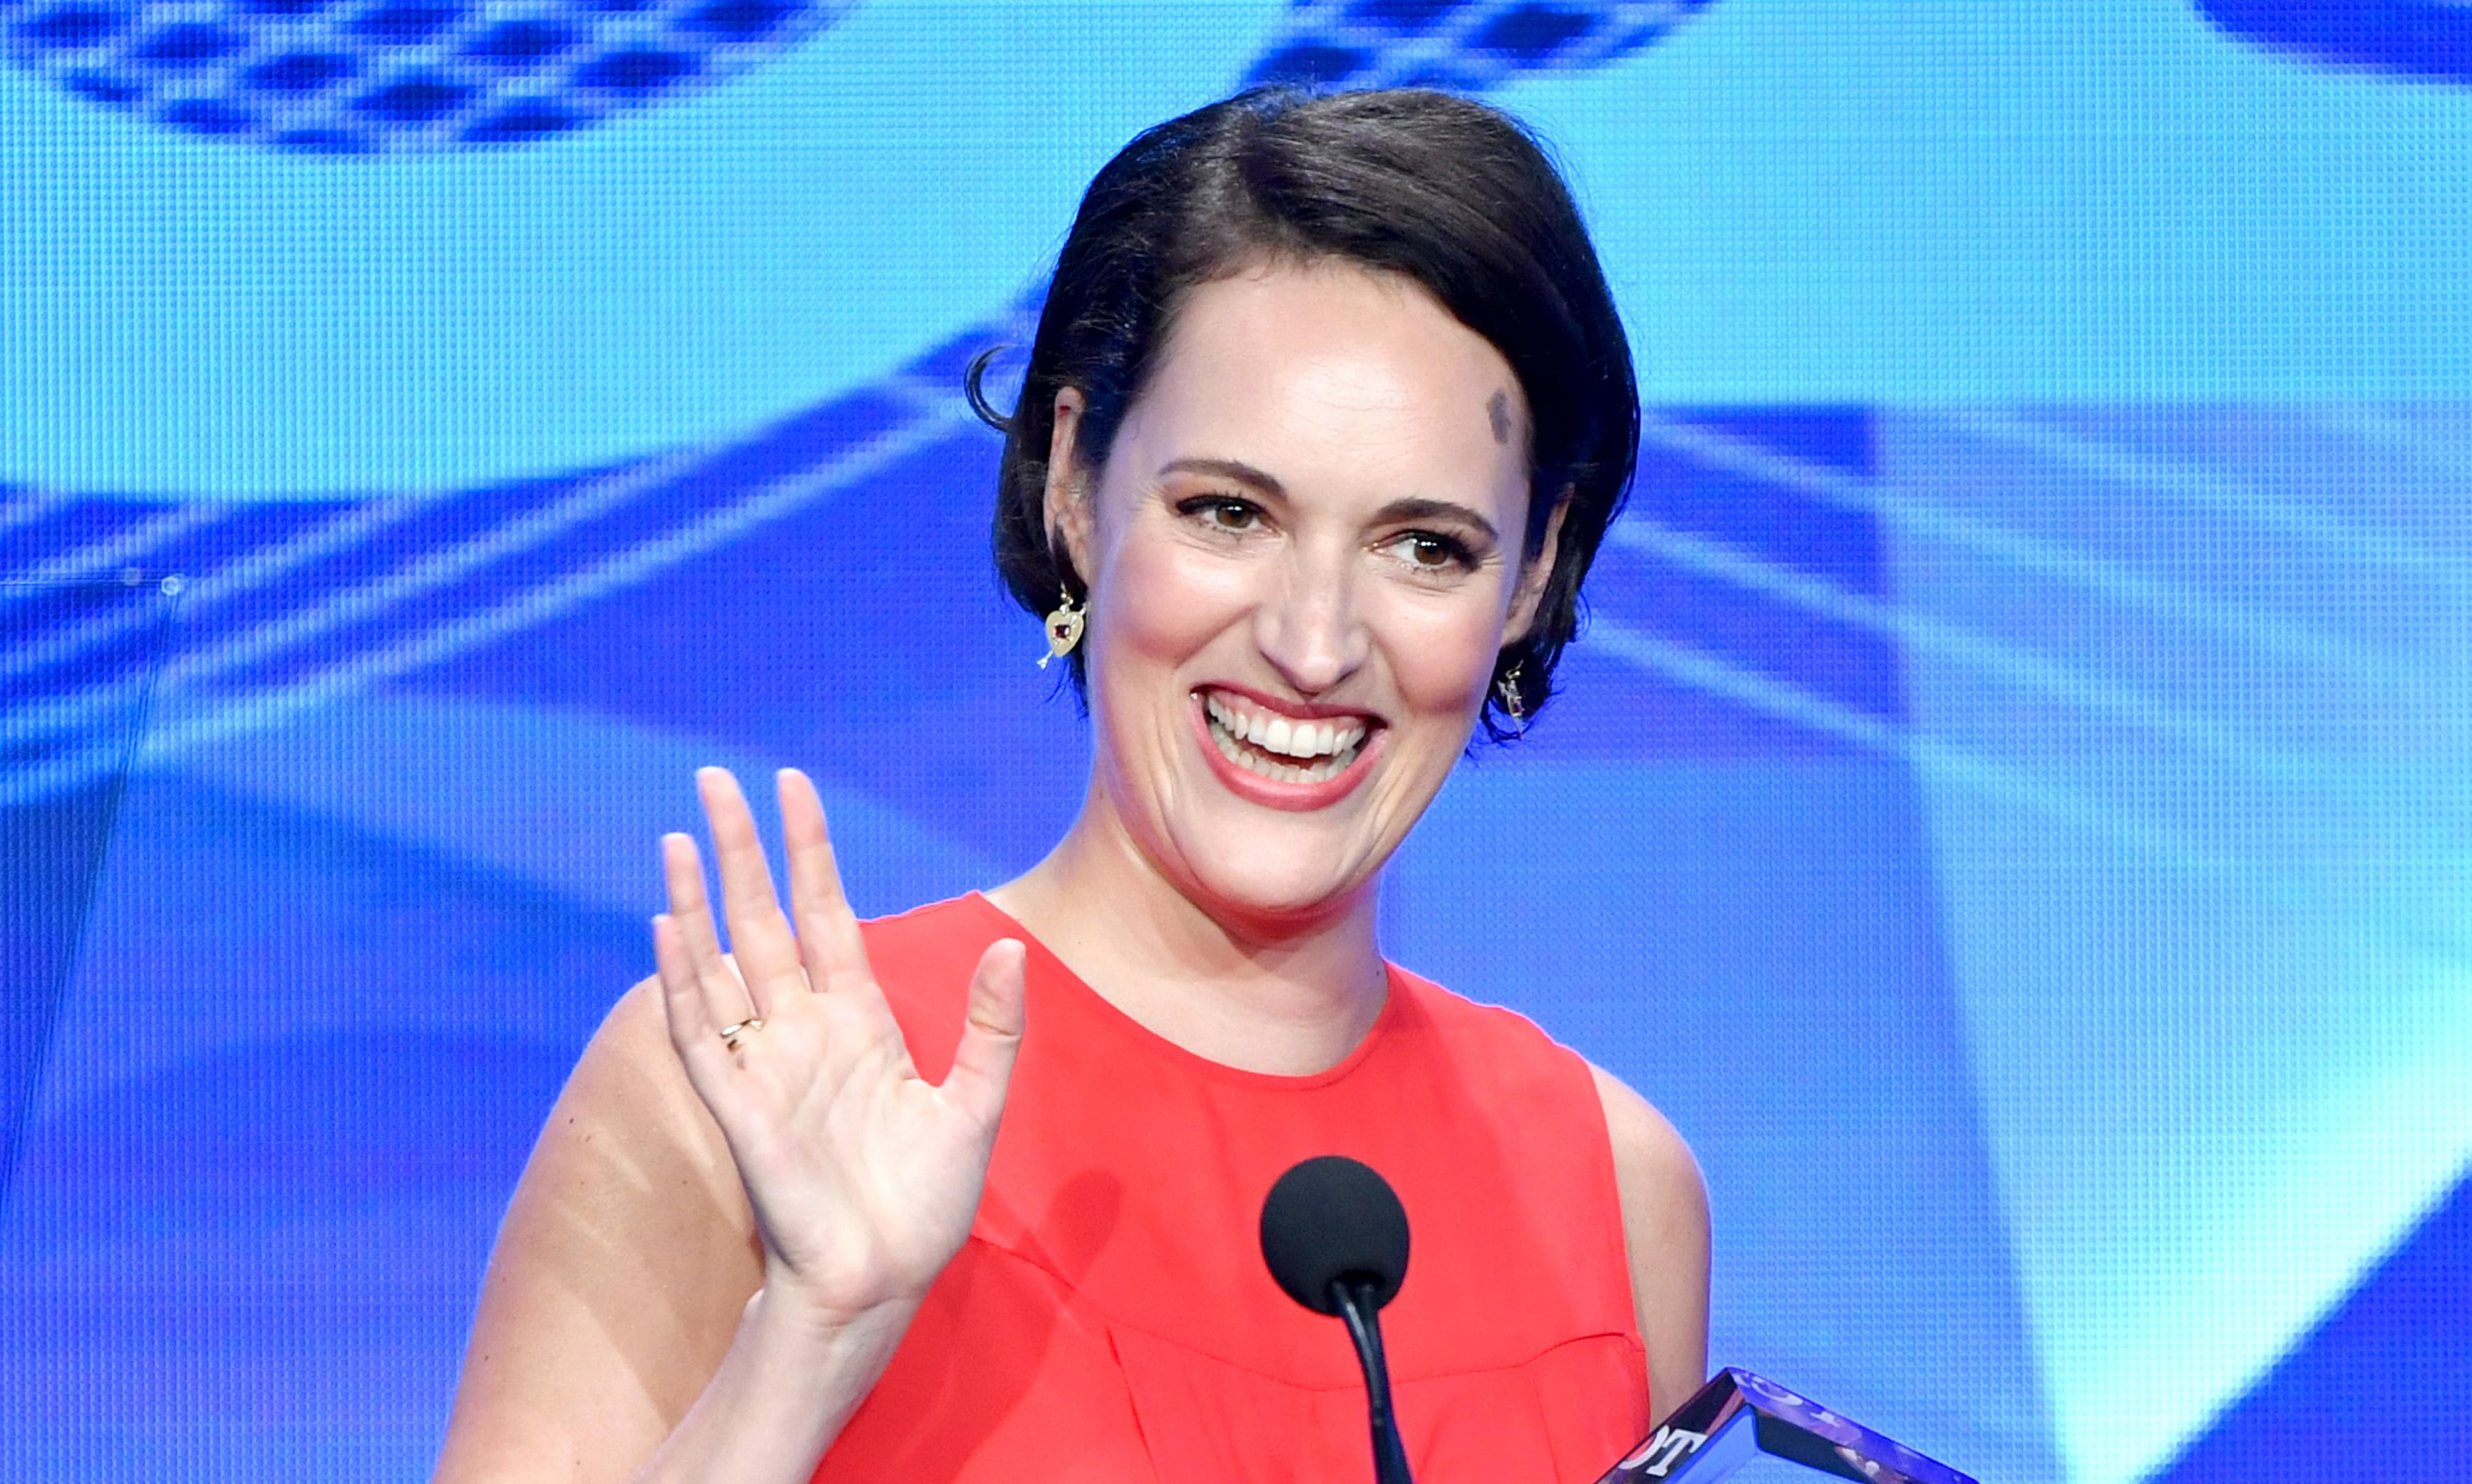 Phoebe Waller-Bridge says she is writing new feature film and plans to direct it